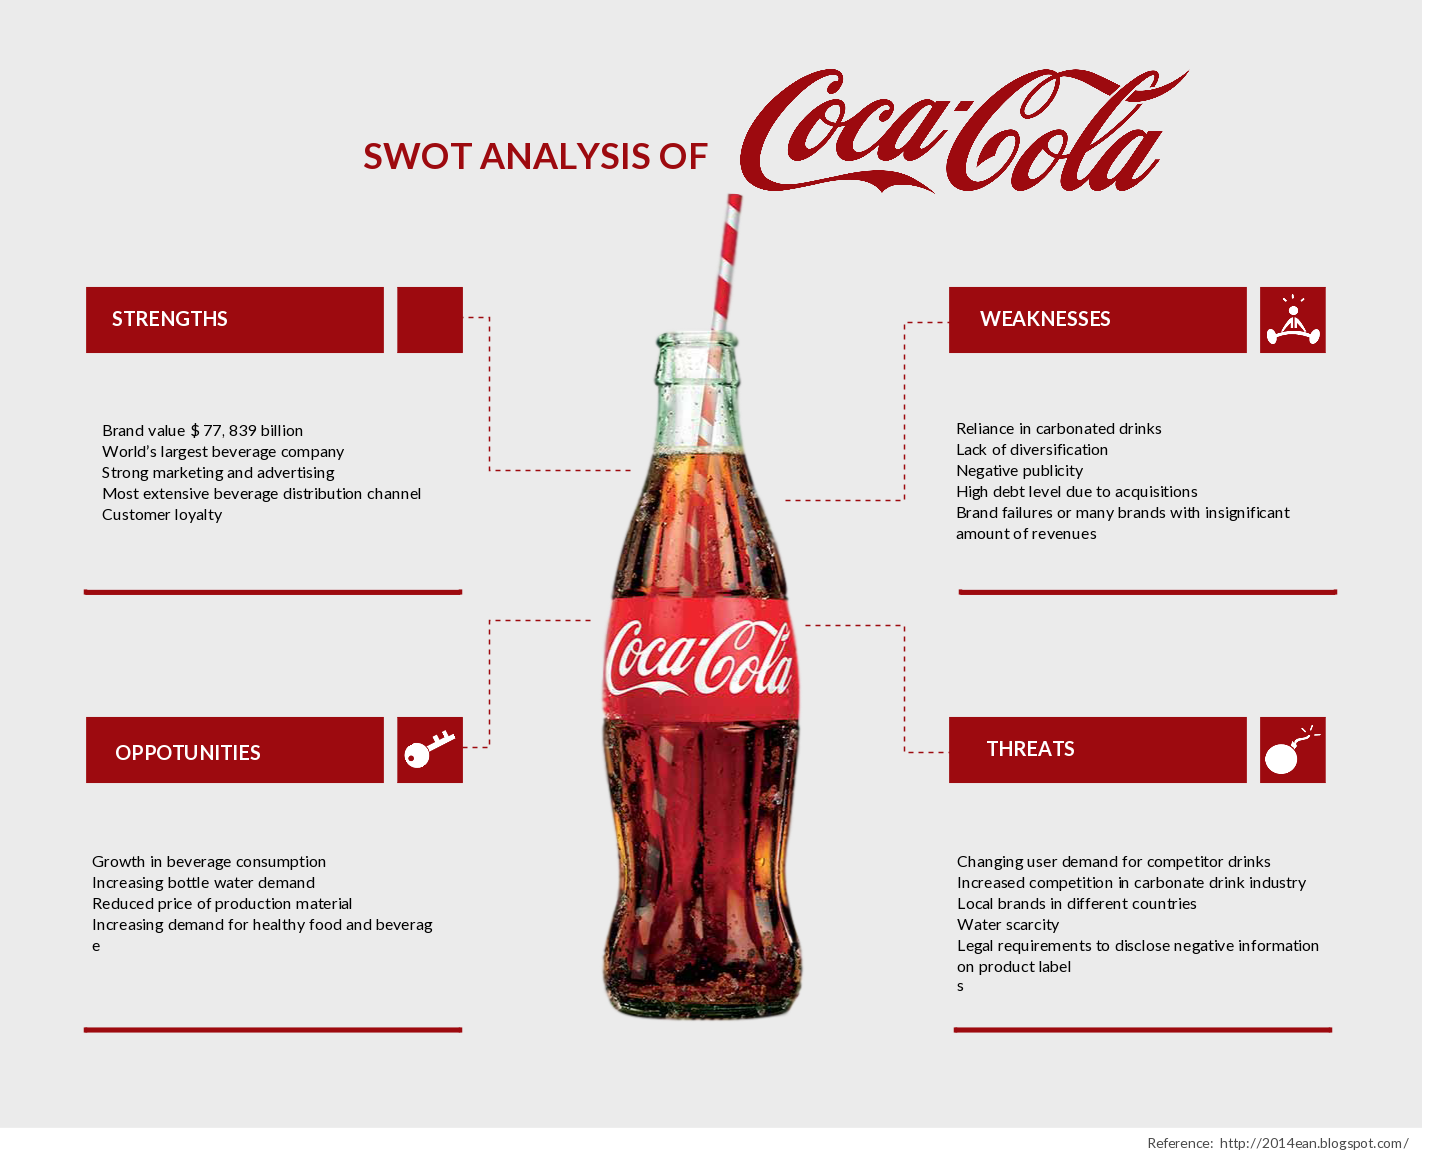 coca cola bcg matrix analysis Coca-cola case study 1 swot analysis: it also studies the seasons in with consumers prefer to buy coca cola political analysis: in accordance with the bcg matrix.